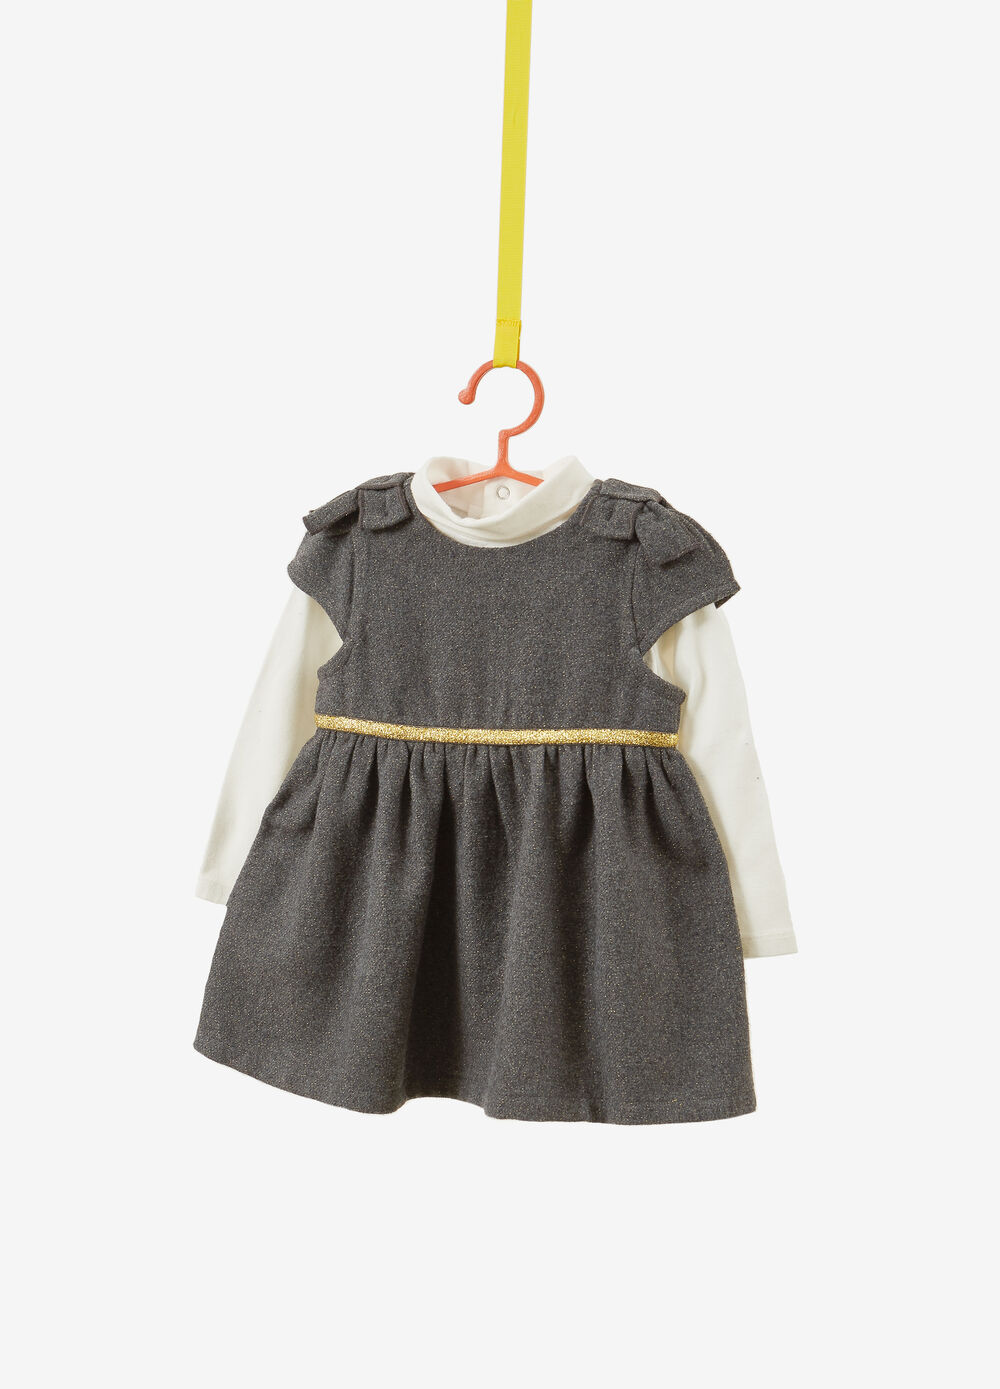 Turtleneck jumper and dress outfit with lurex and bows